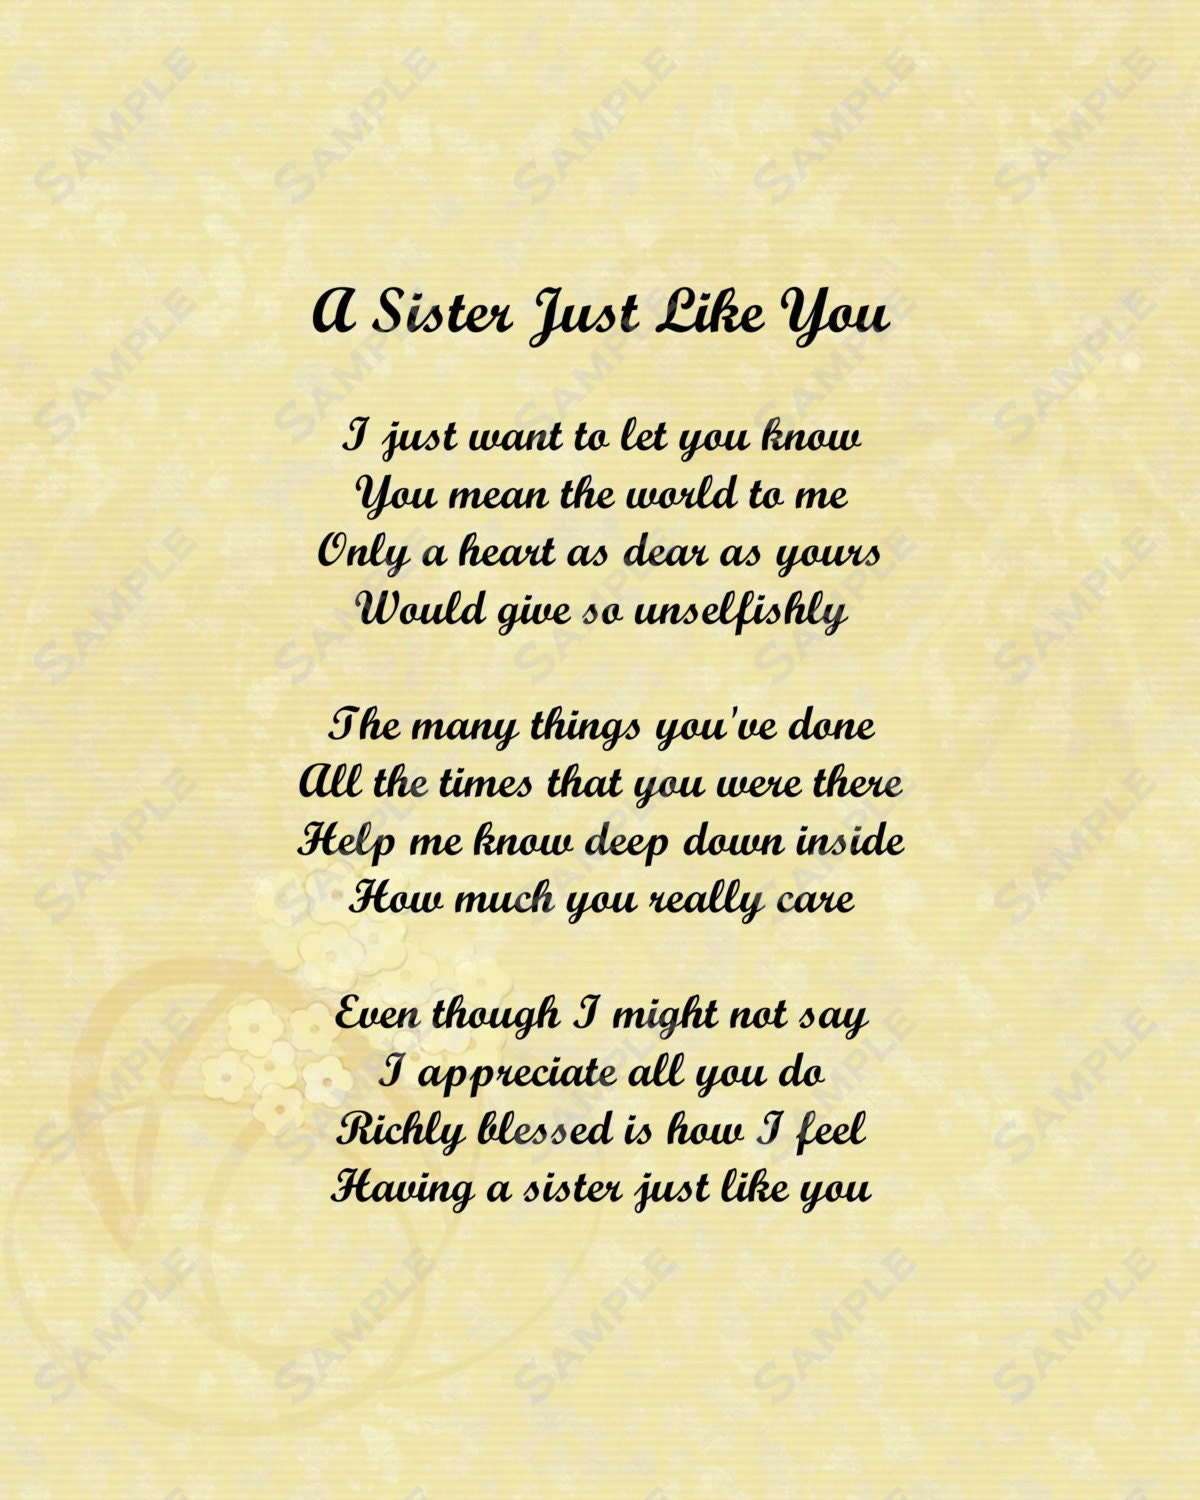 Love My Sister Quotes And Poems Sister love poem 8 x 10 printFuture Sister In Law Poems